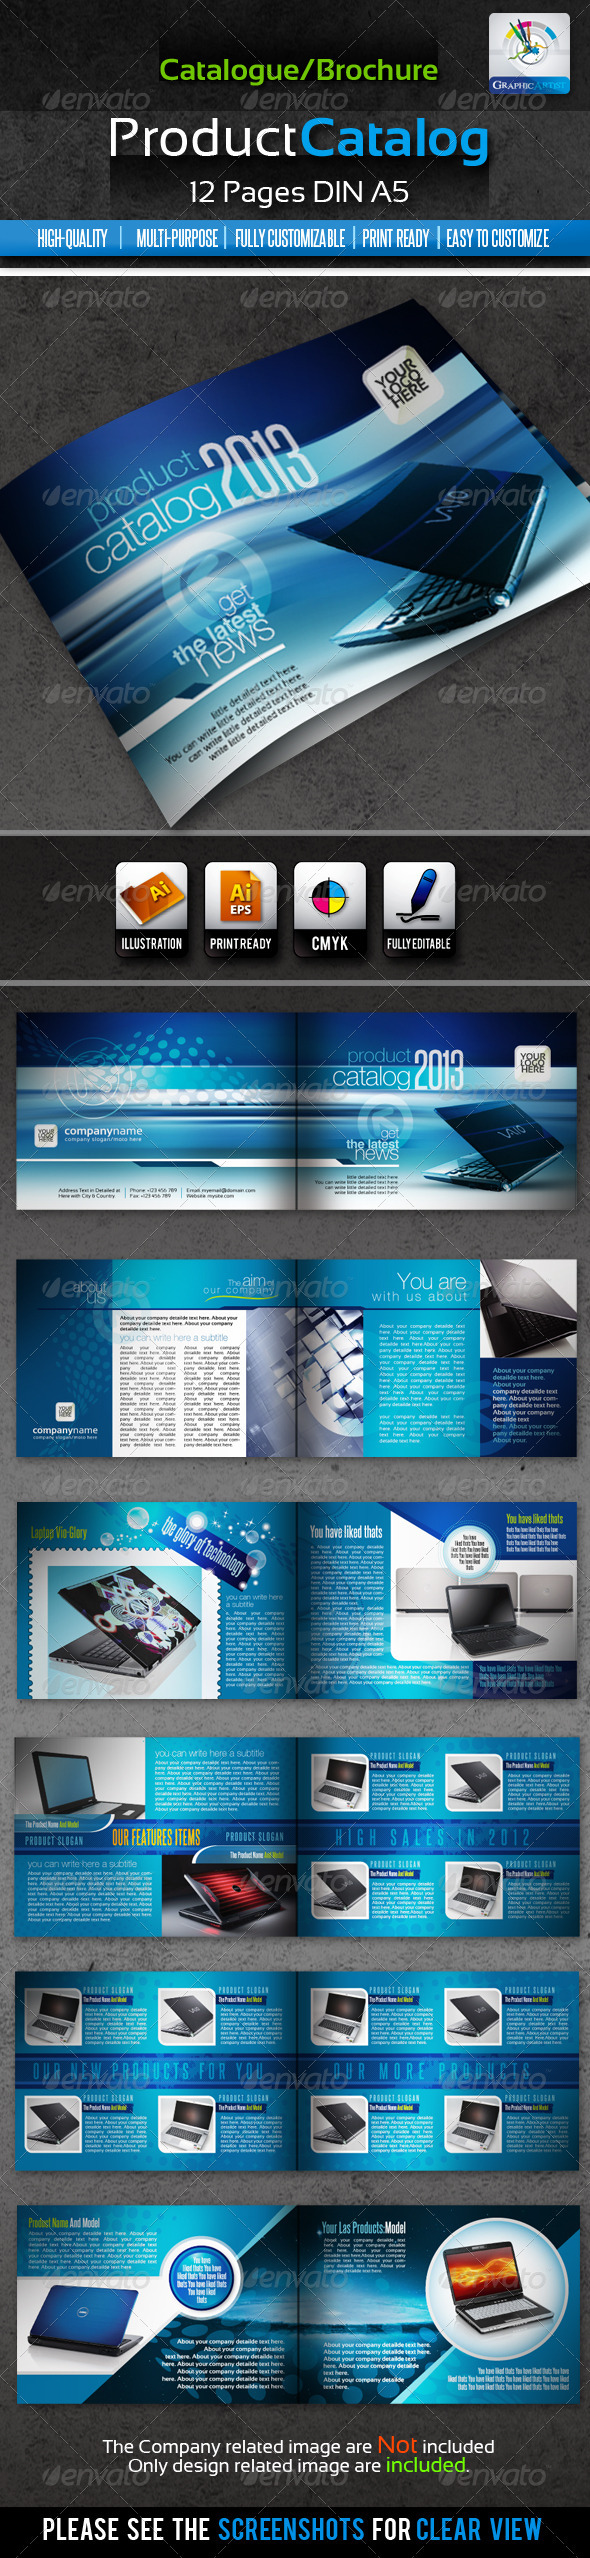 Corporate Product Catalogue Brochure 12pages